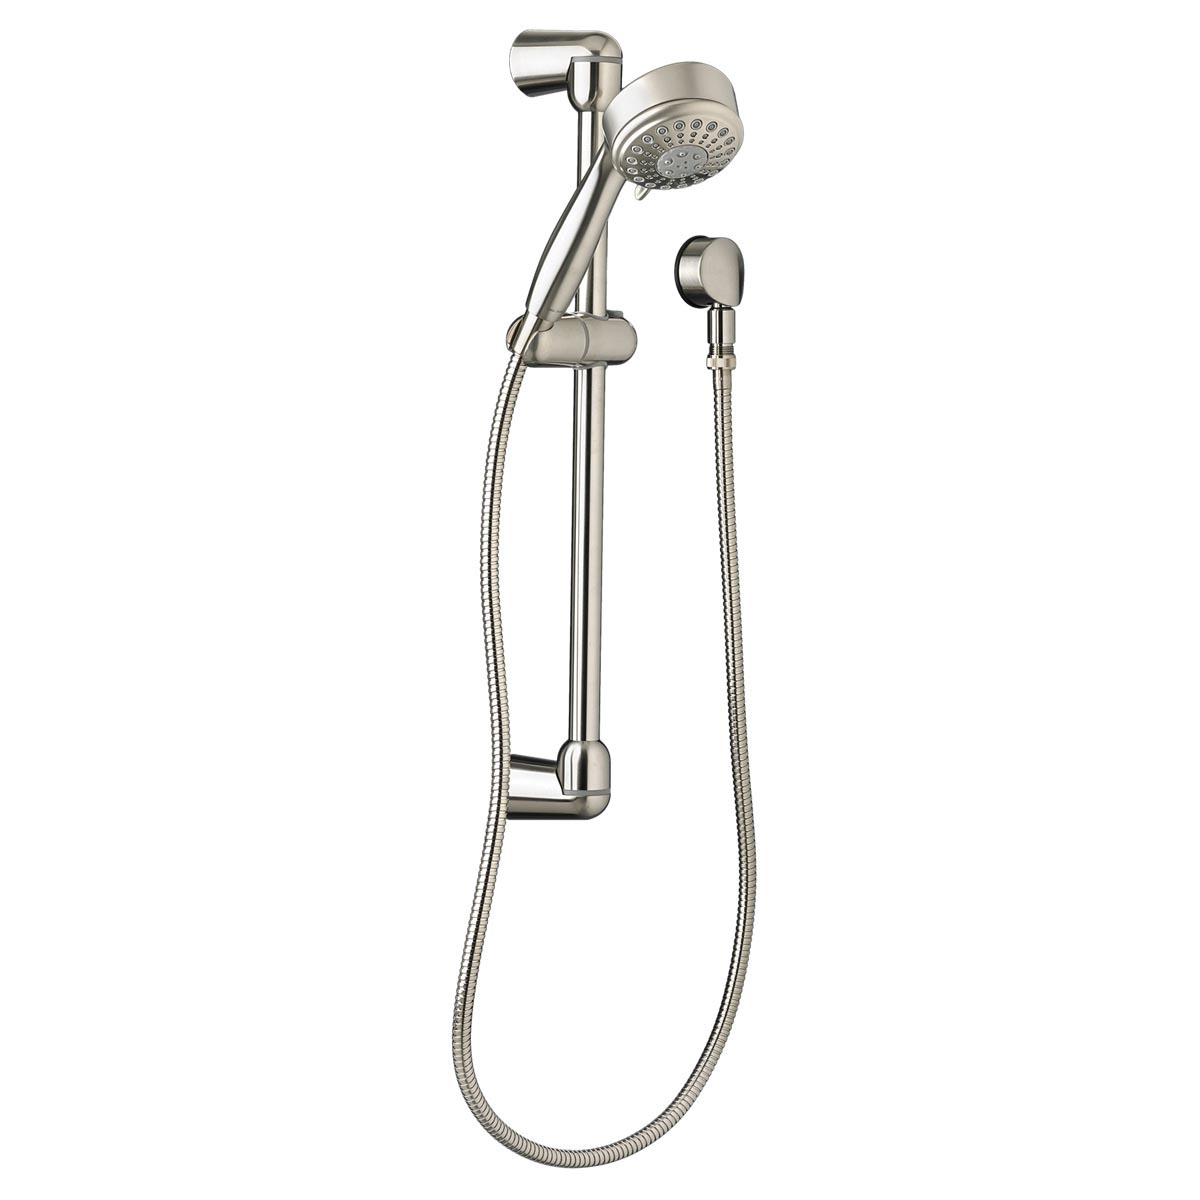 American Standard 1660638.295 Modern 5-Function Shower System Kit, 3-3/4 in Dia Head, 2.5 gpm, 59 in Hose L, Import